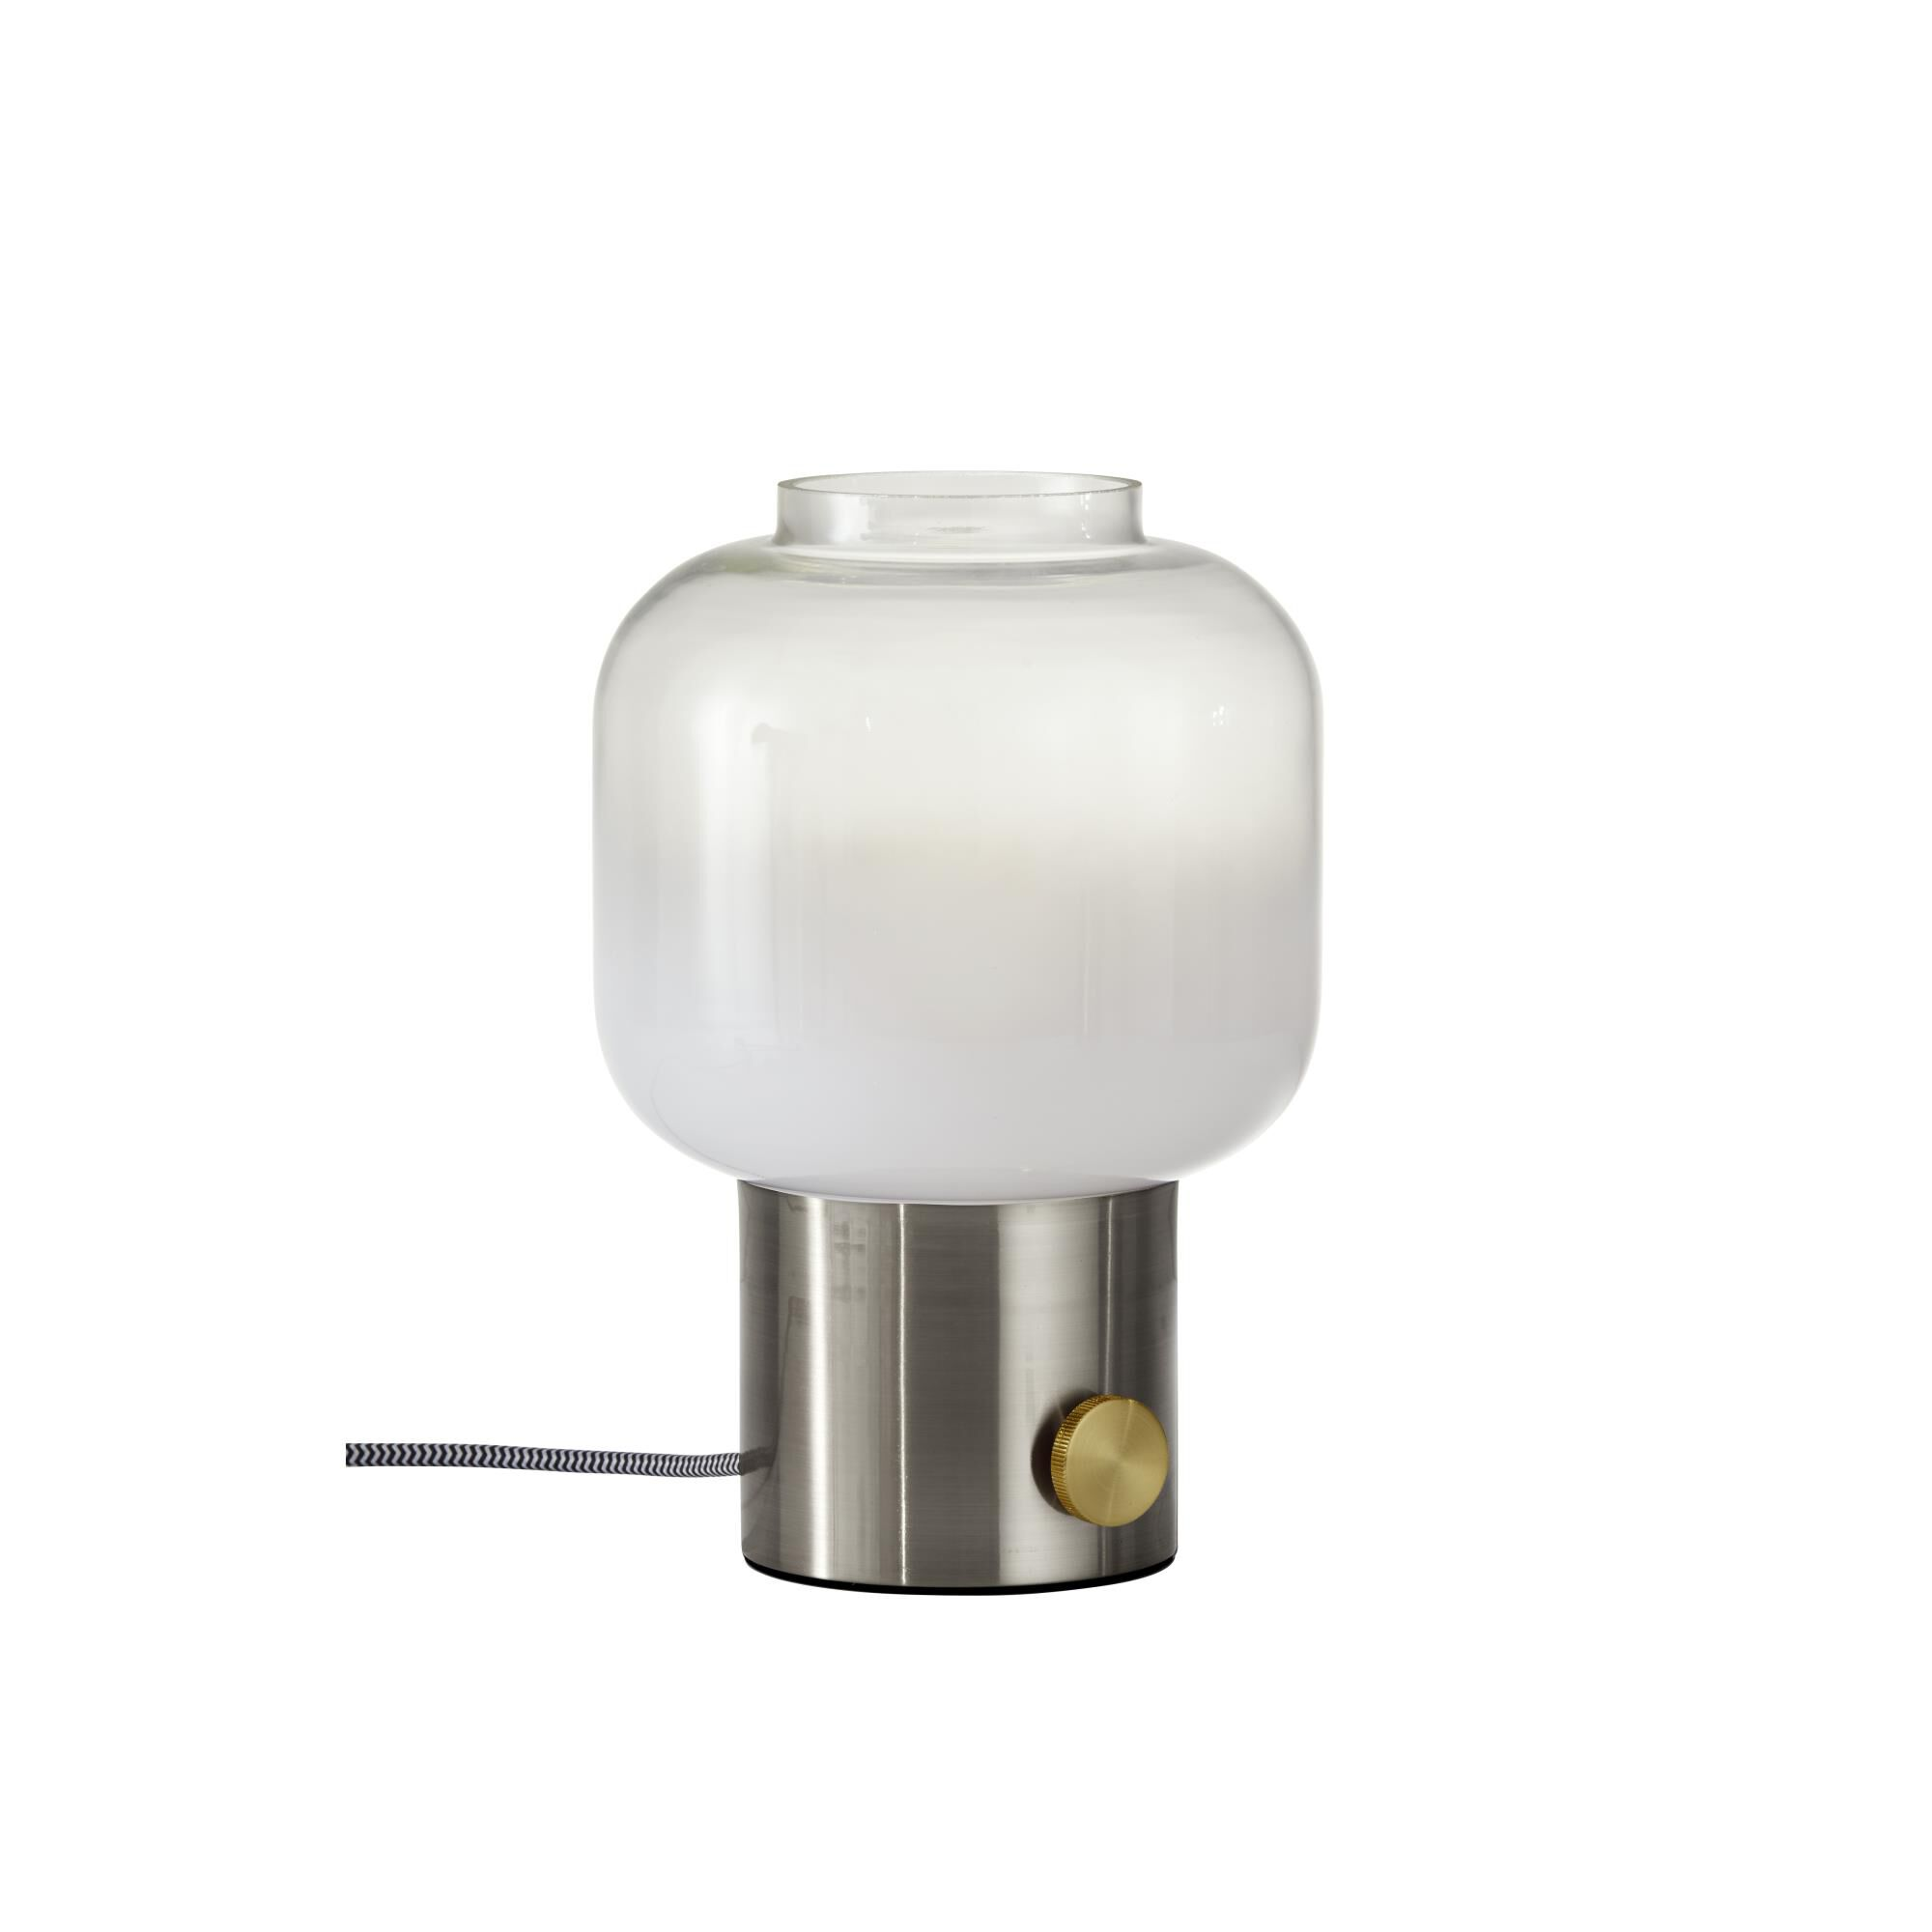 Adesso Lewis Accent Lamp Lewis - 6027-22 - Transitional Accent Lamp